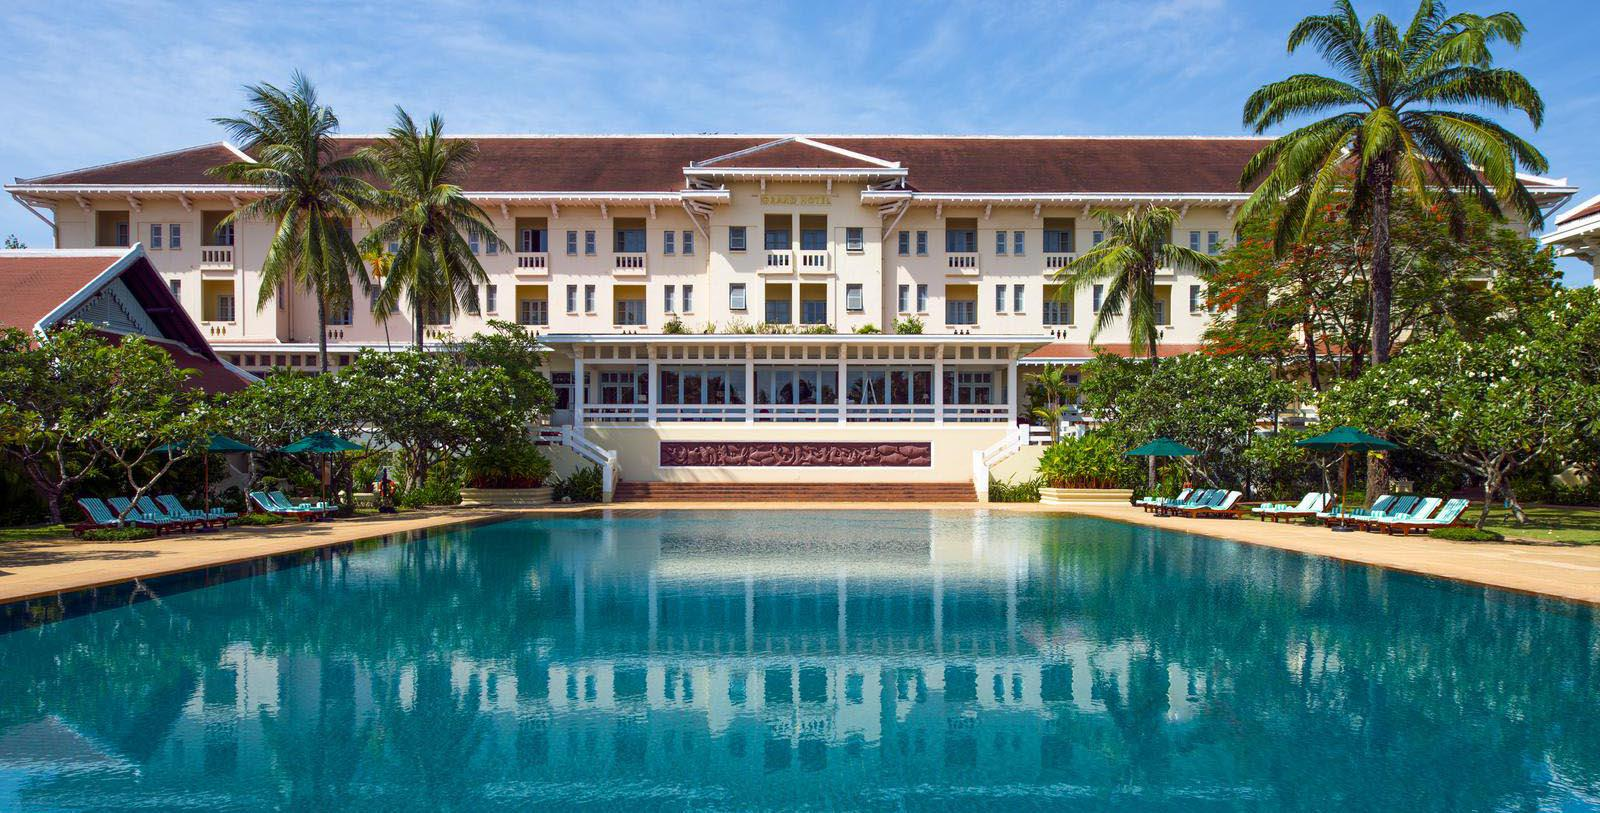 Image of Pool Raffles Grand Hotel D'Angkor, 1932, Member of Historic Hotels Worldwide, in Siem Reap, Cambodia, Special Offers, Discounted Rates, Families, Romantic Escape, Honeymoons, Anniversaries, Reunions